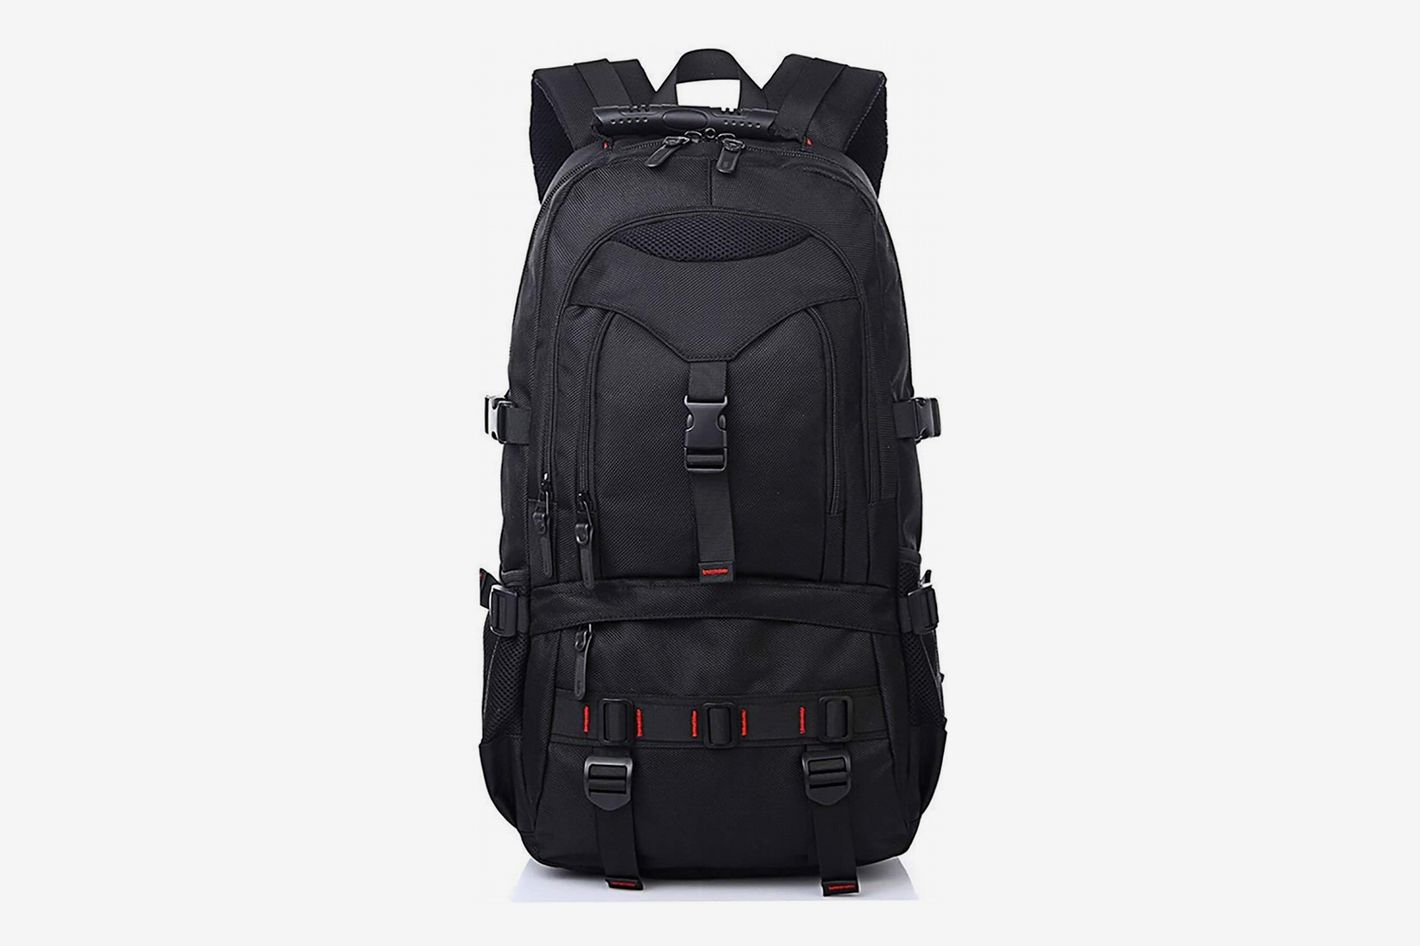 a8aae3da655d KAKA Backpack for 17-Inch Laptops